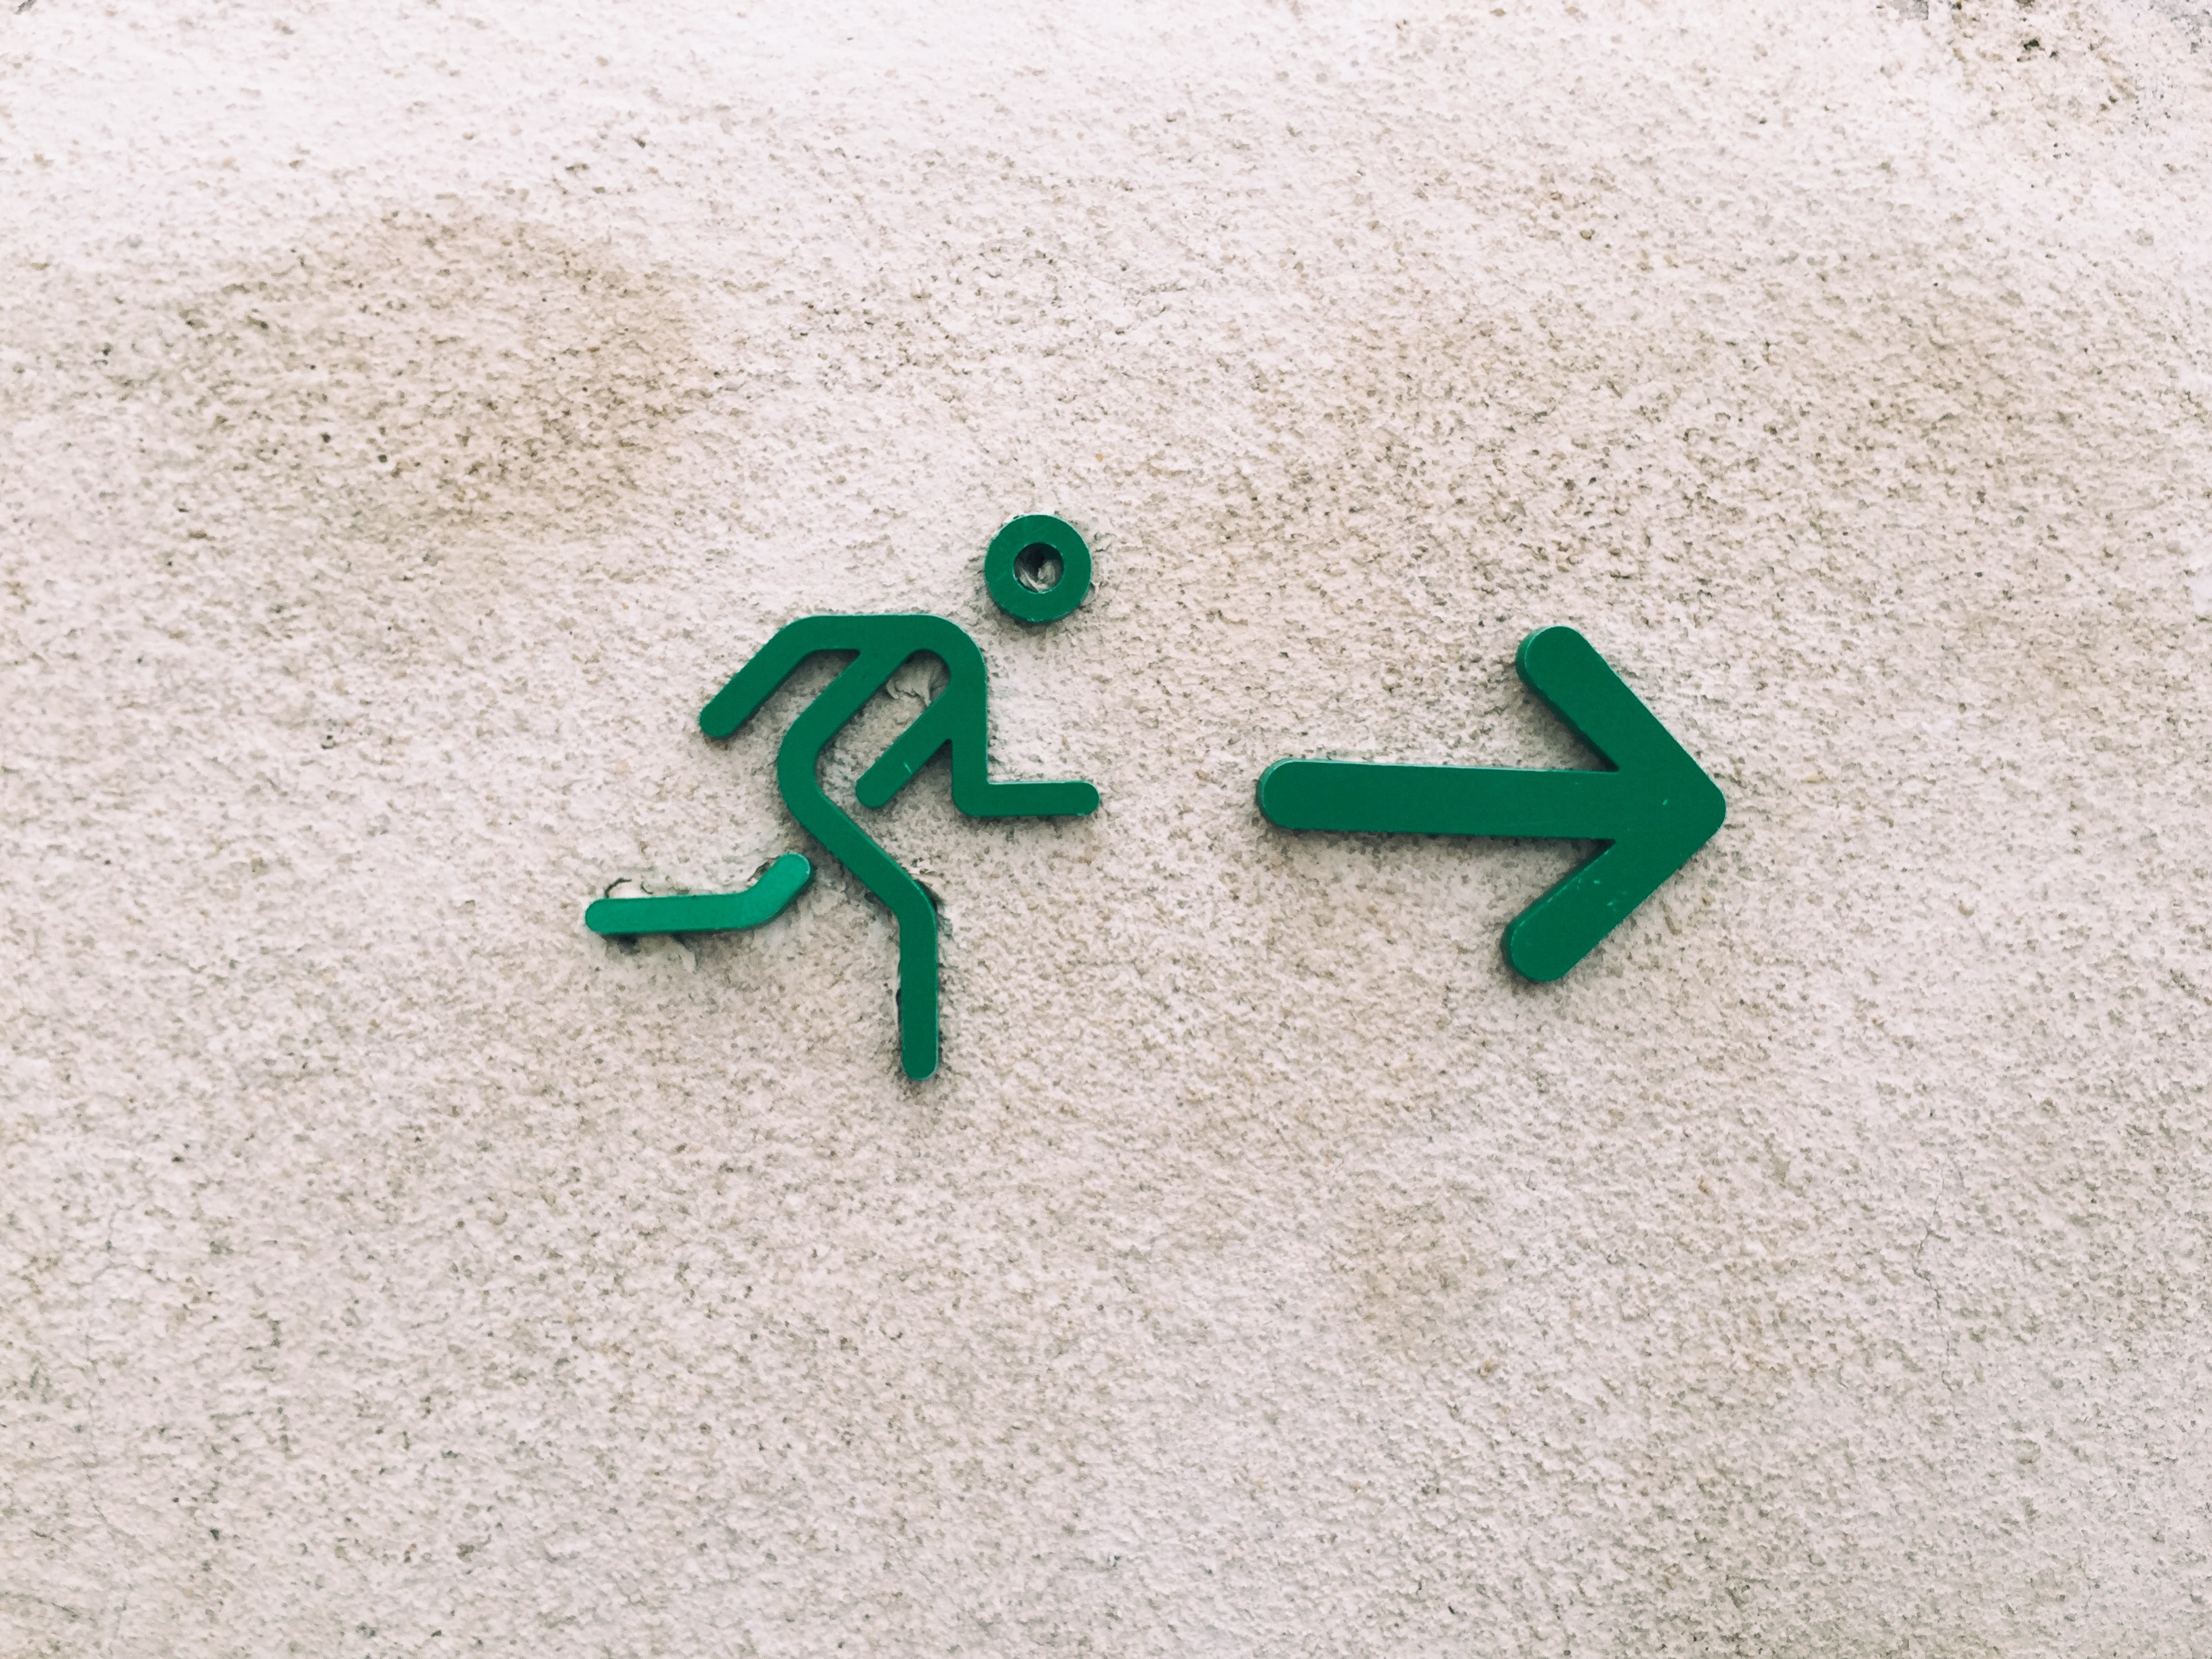 A green sign of a stick figure guy running towards a green arrow.